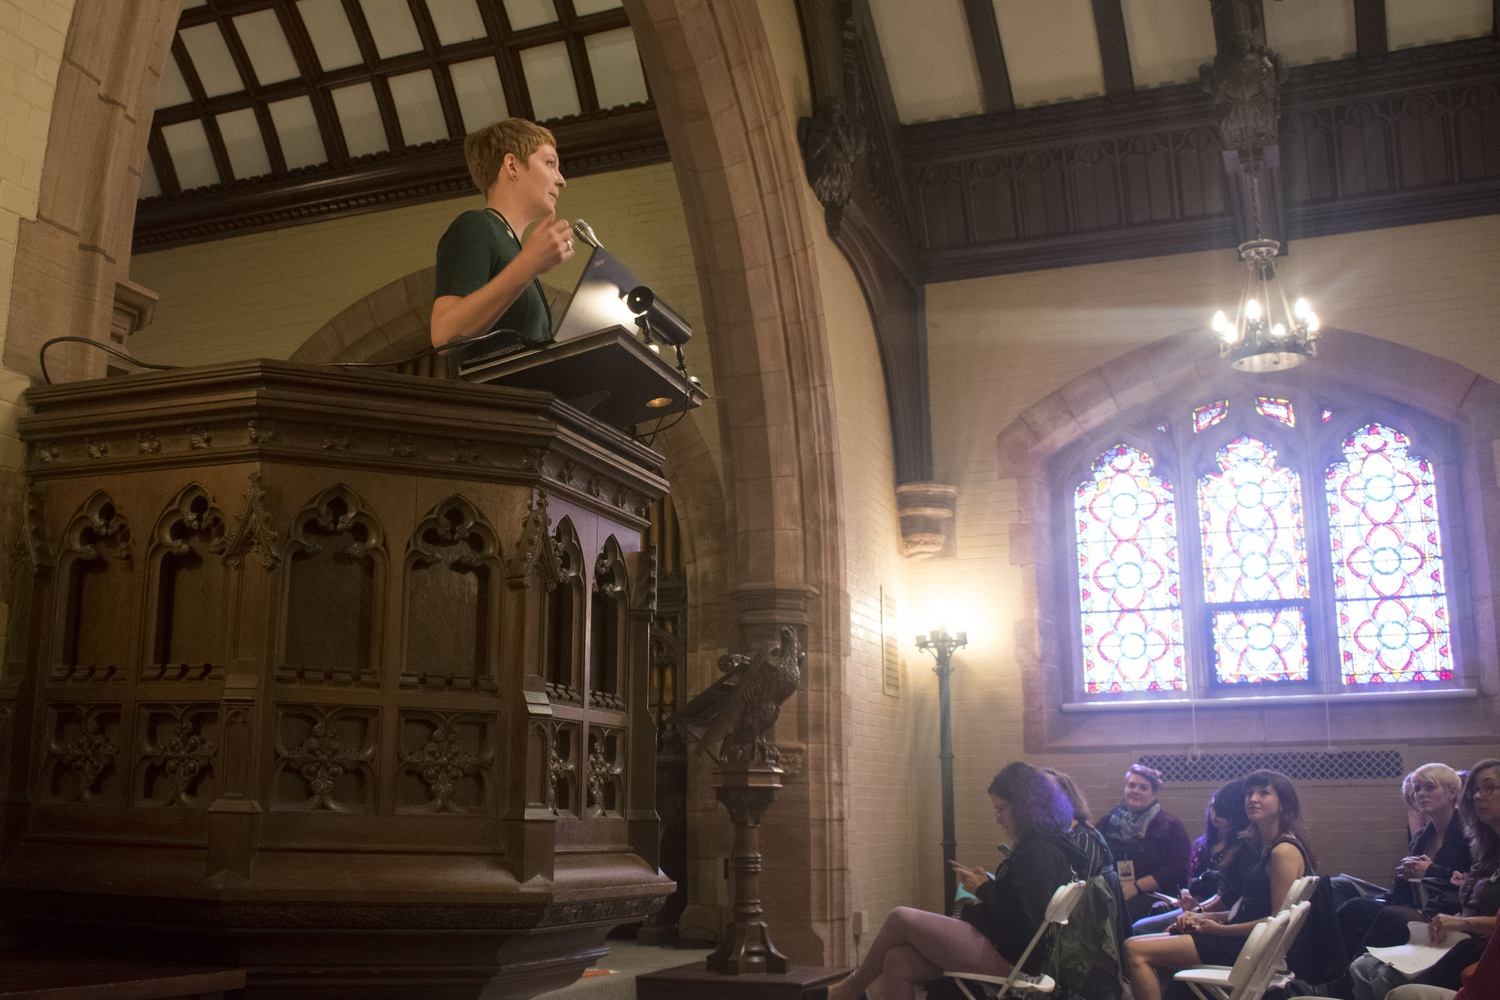 Robin S. Lacy speaks on death houses and winter burials in Canada at the Death Salon in Story Chapel.